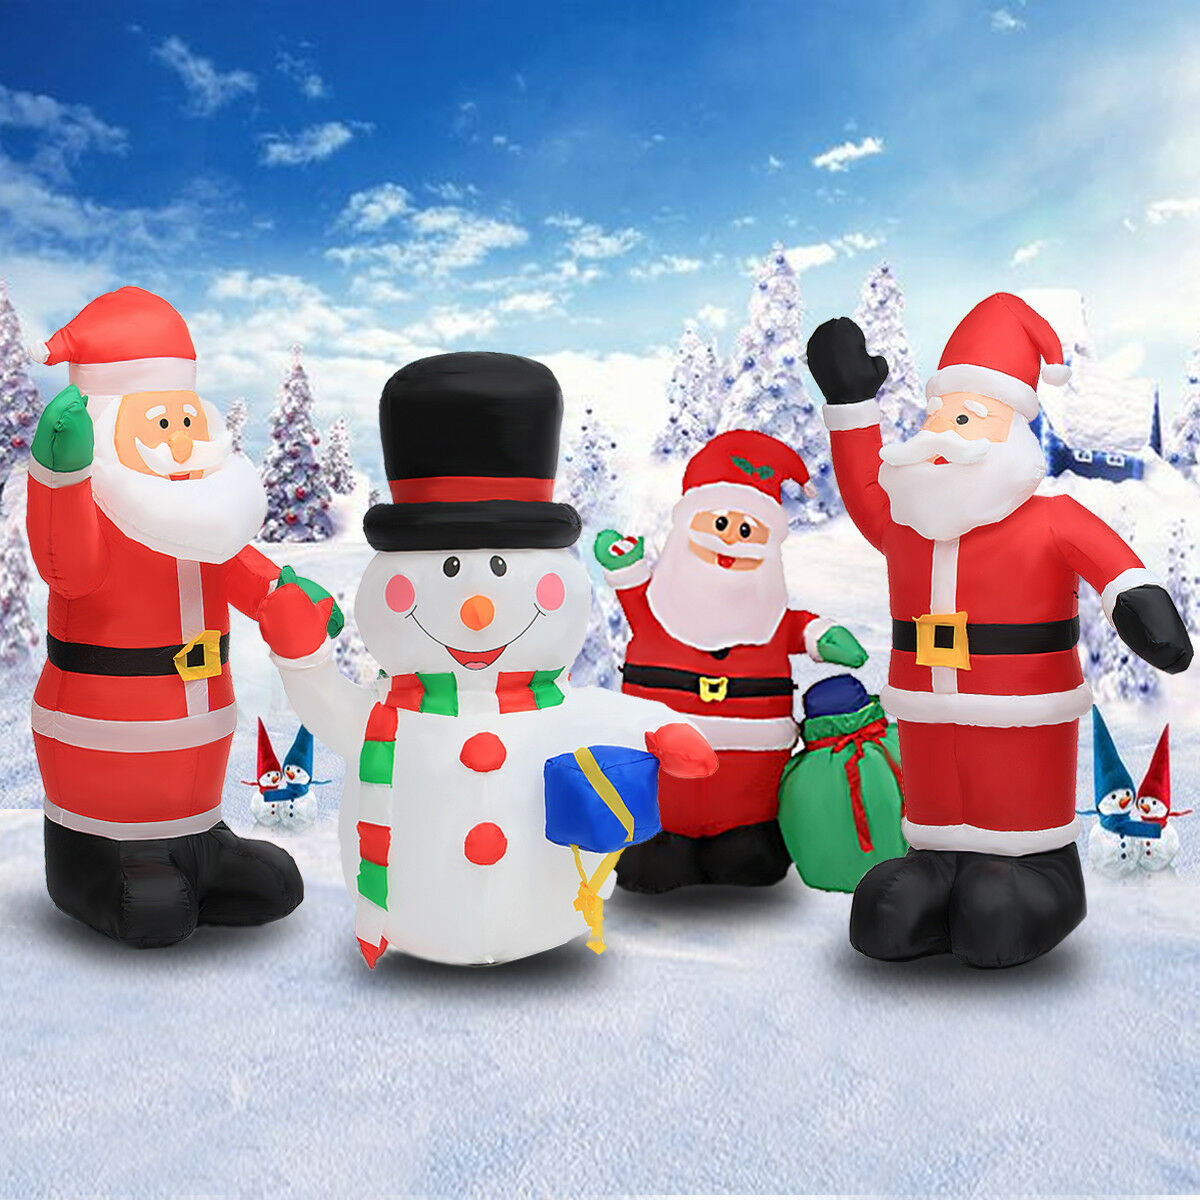 100 Snowman Outdoor Decorations Yard Stakes